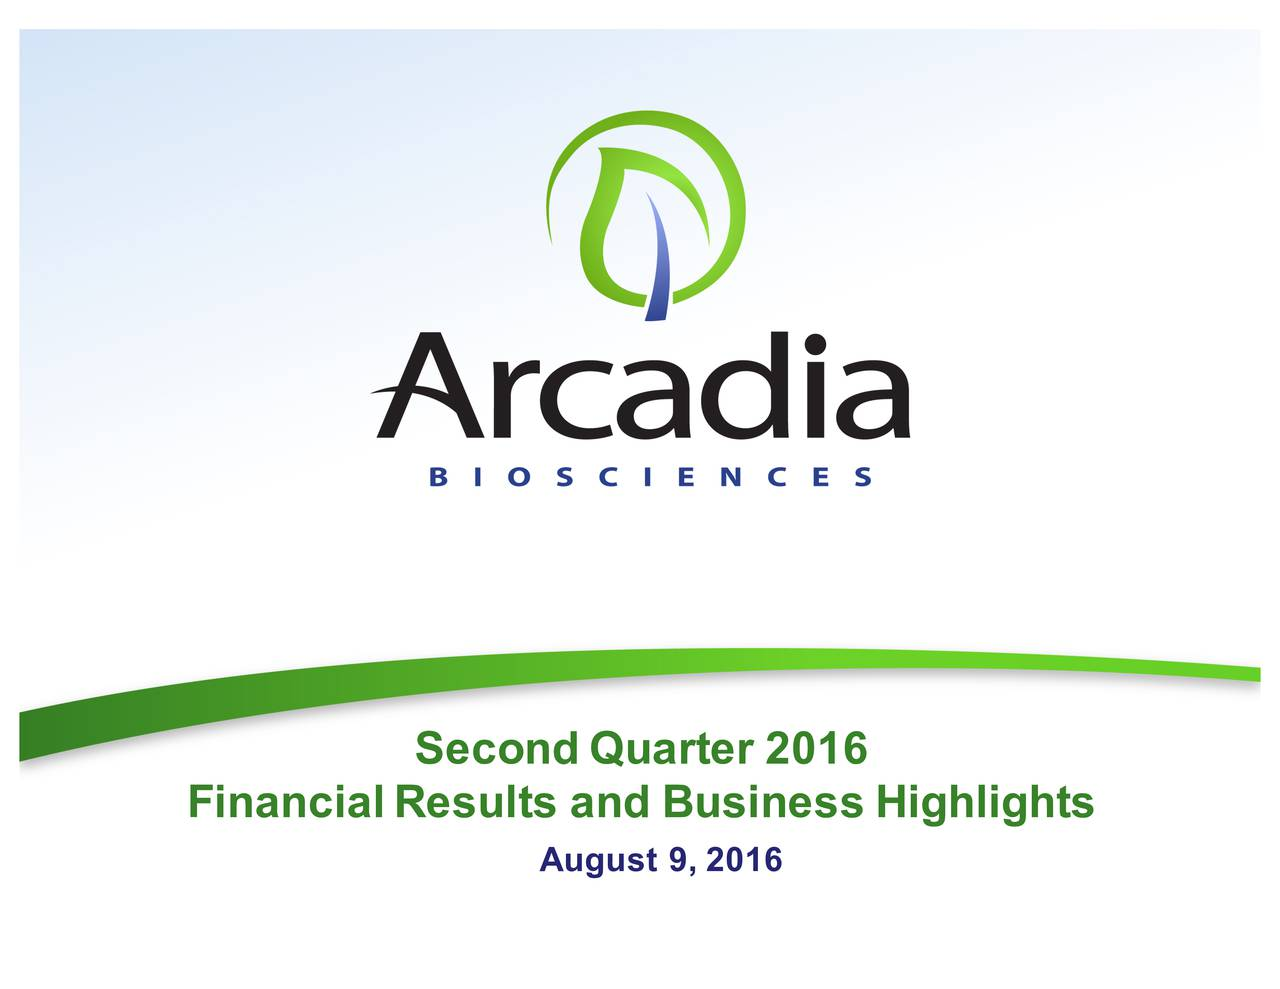 Financial Results and Business Highlights August 9, 2016